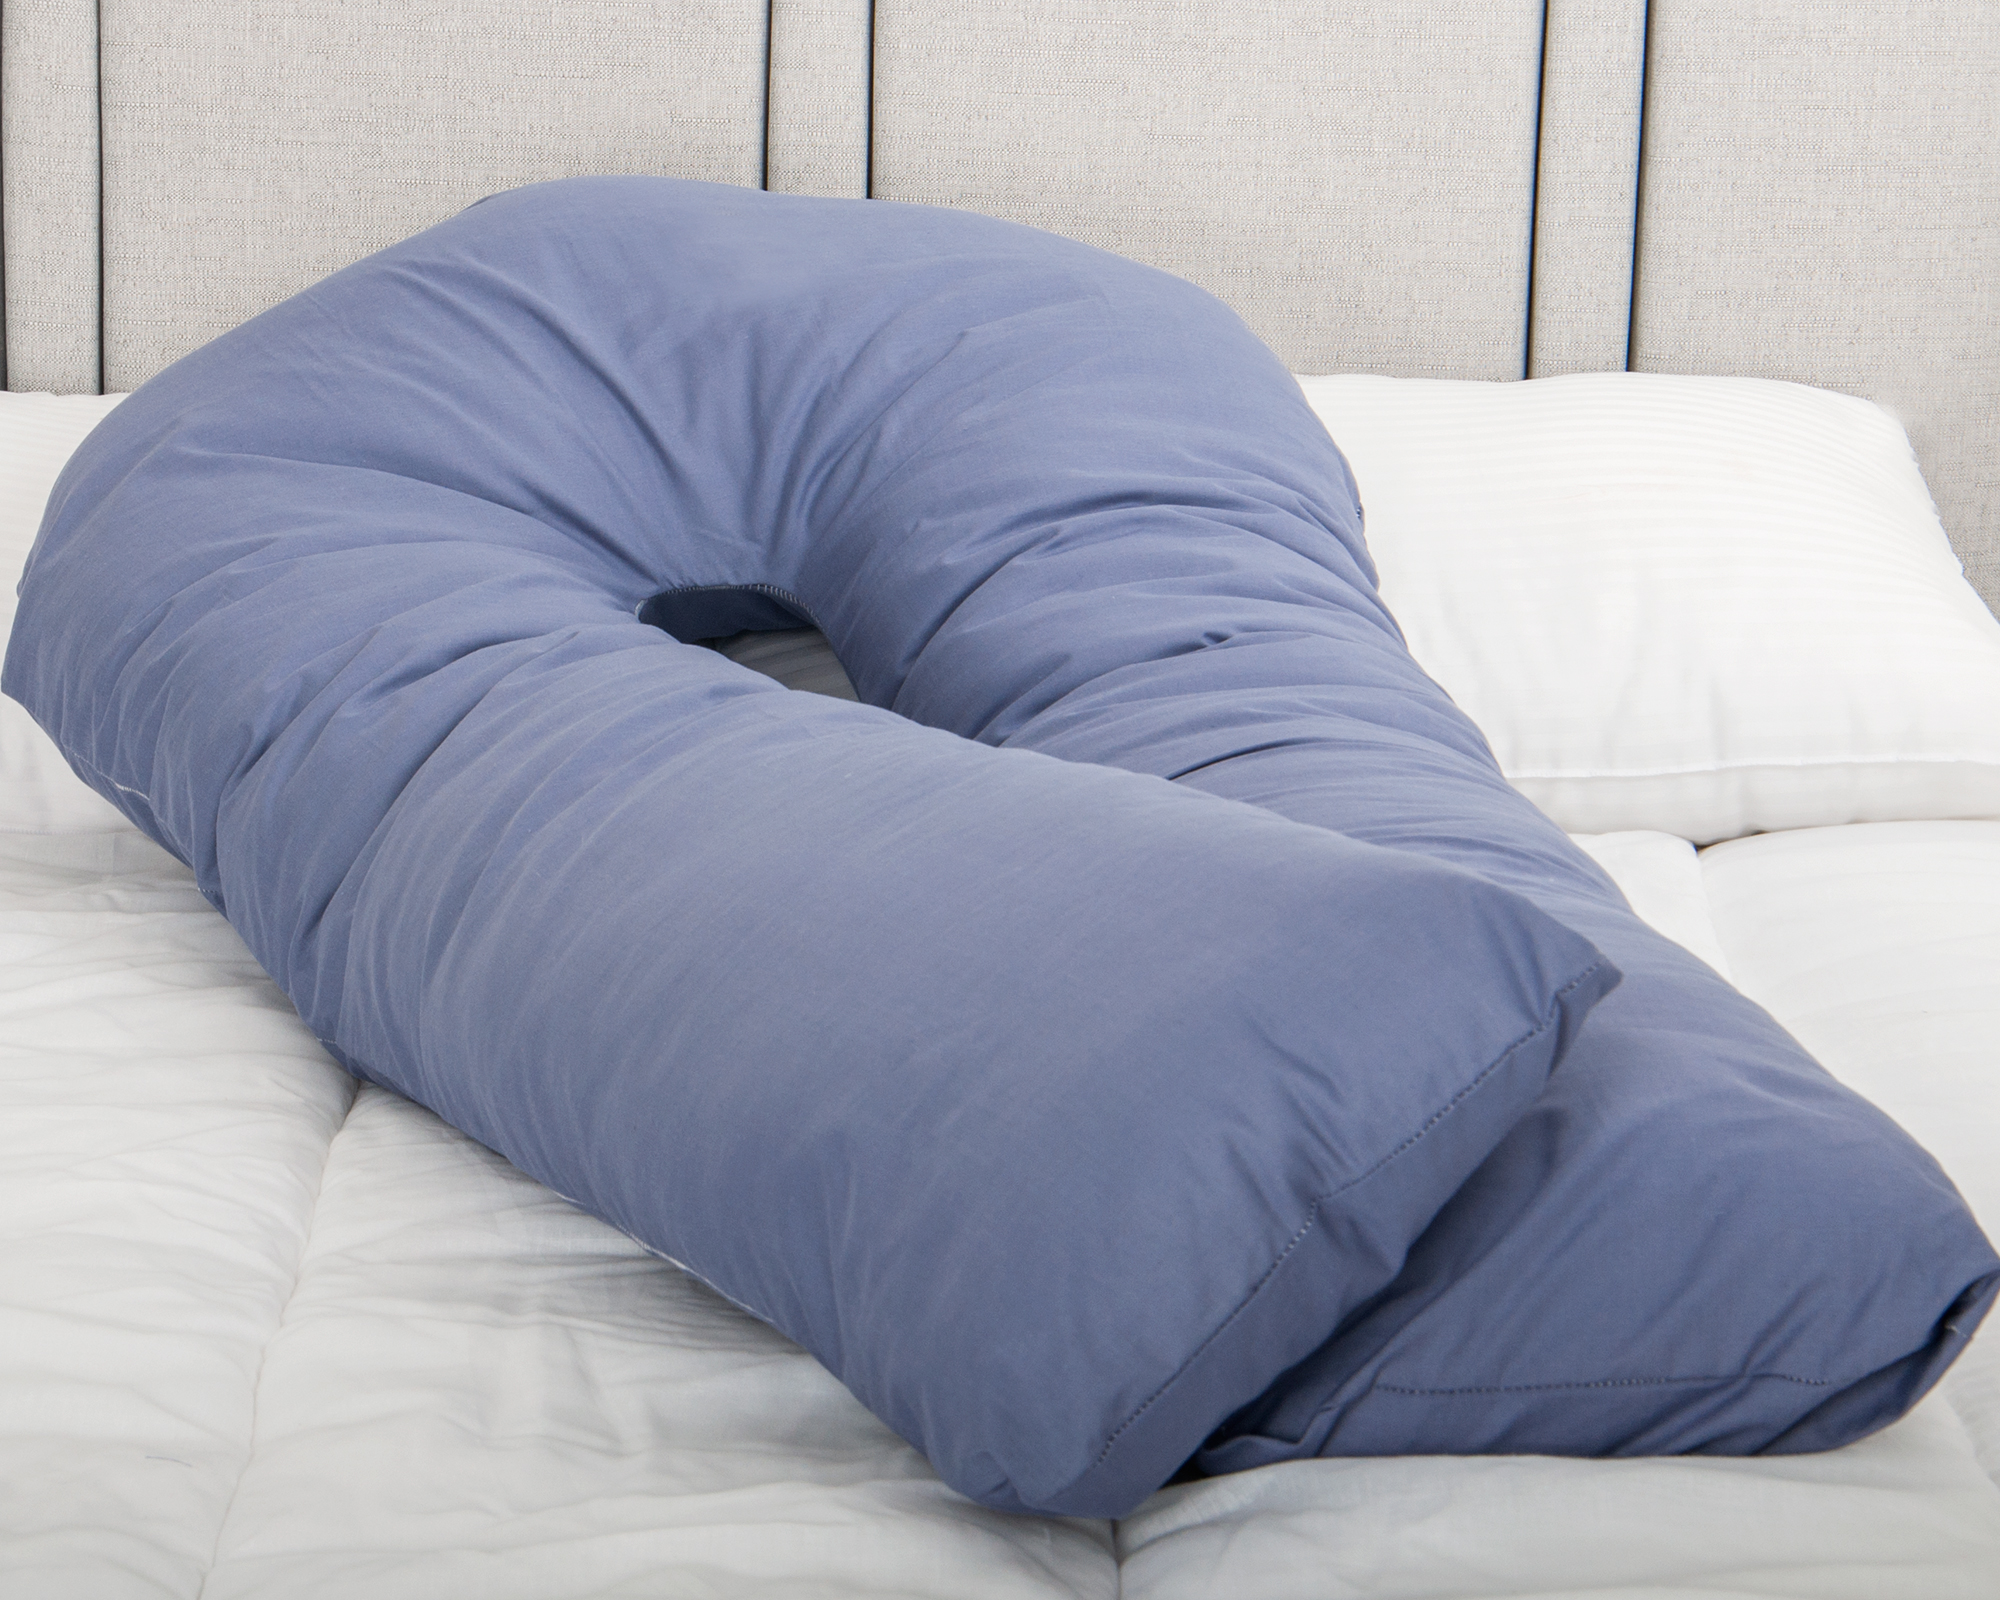 Pillowcase For Our U Shaped Pregnancy Pillow Bedding